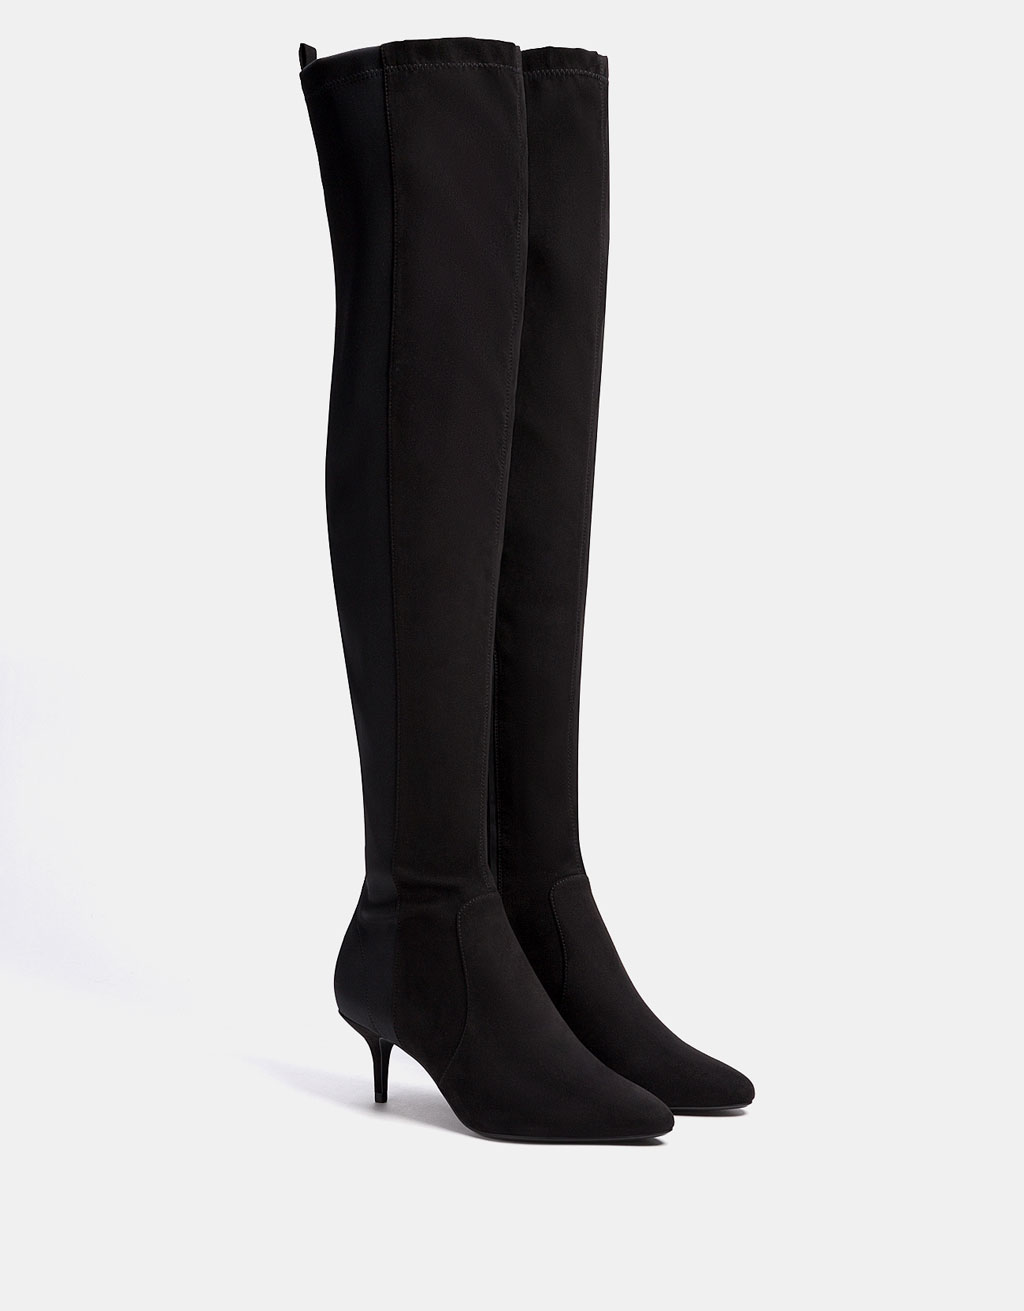 Combined knee-high boots with stiletto heels